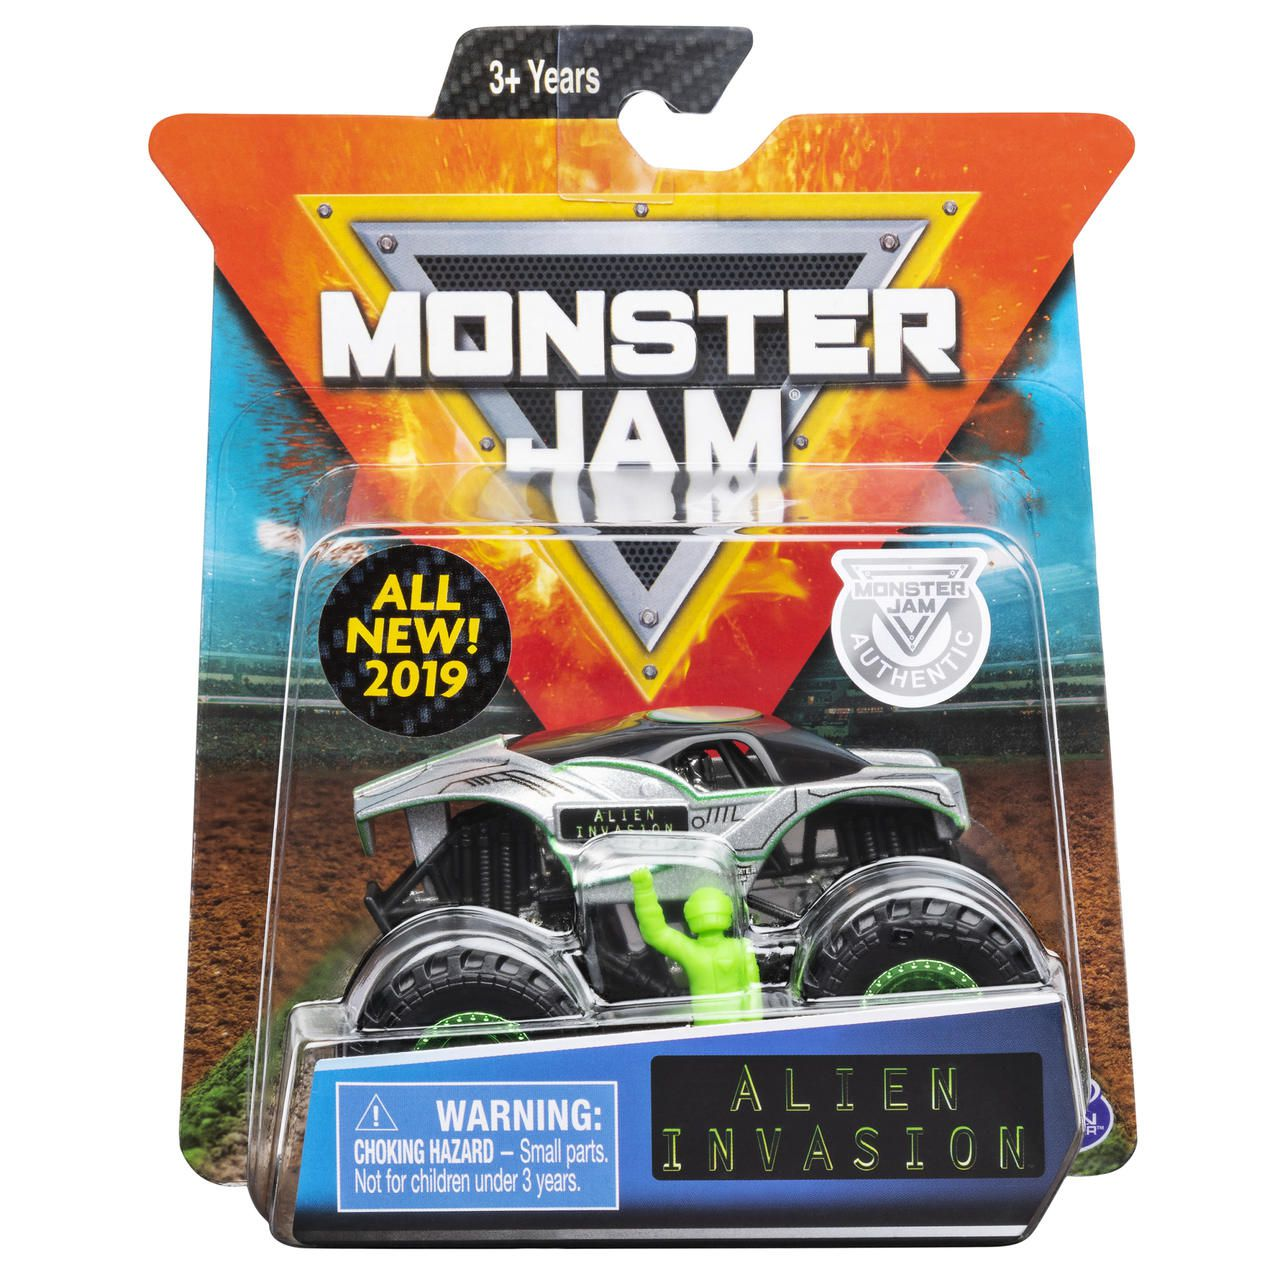 Monster Jam Truck - Alien Invasion - Escala 1:64 - Original